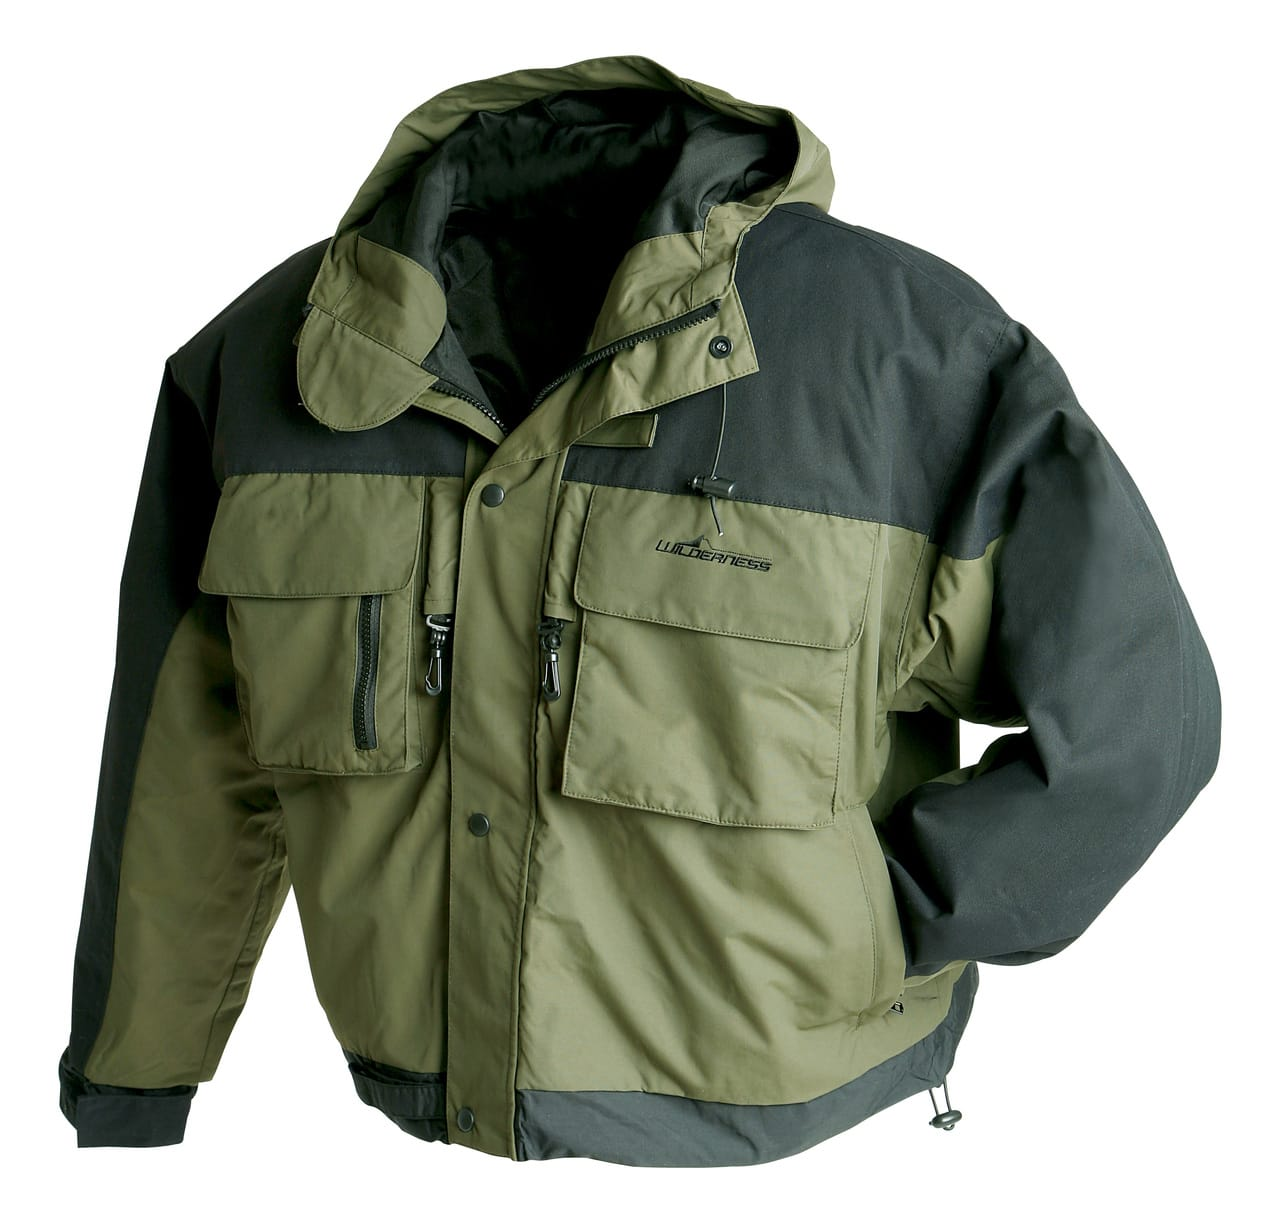 5e76122053471 Daiwa Wilderness Wading Jacket - Mid Antrim Angling Centre